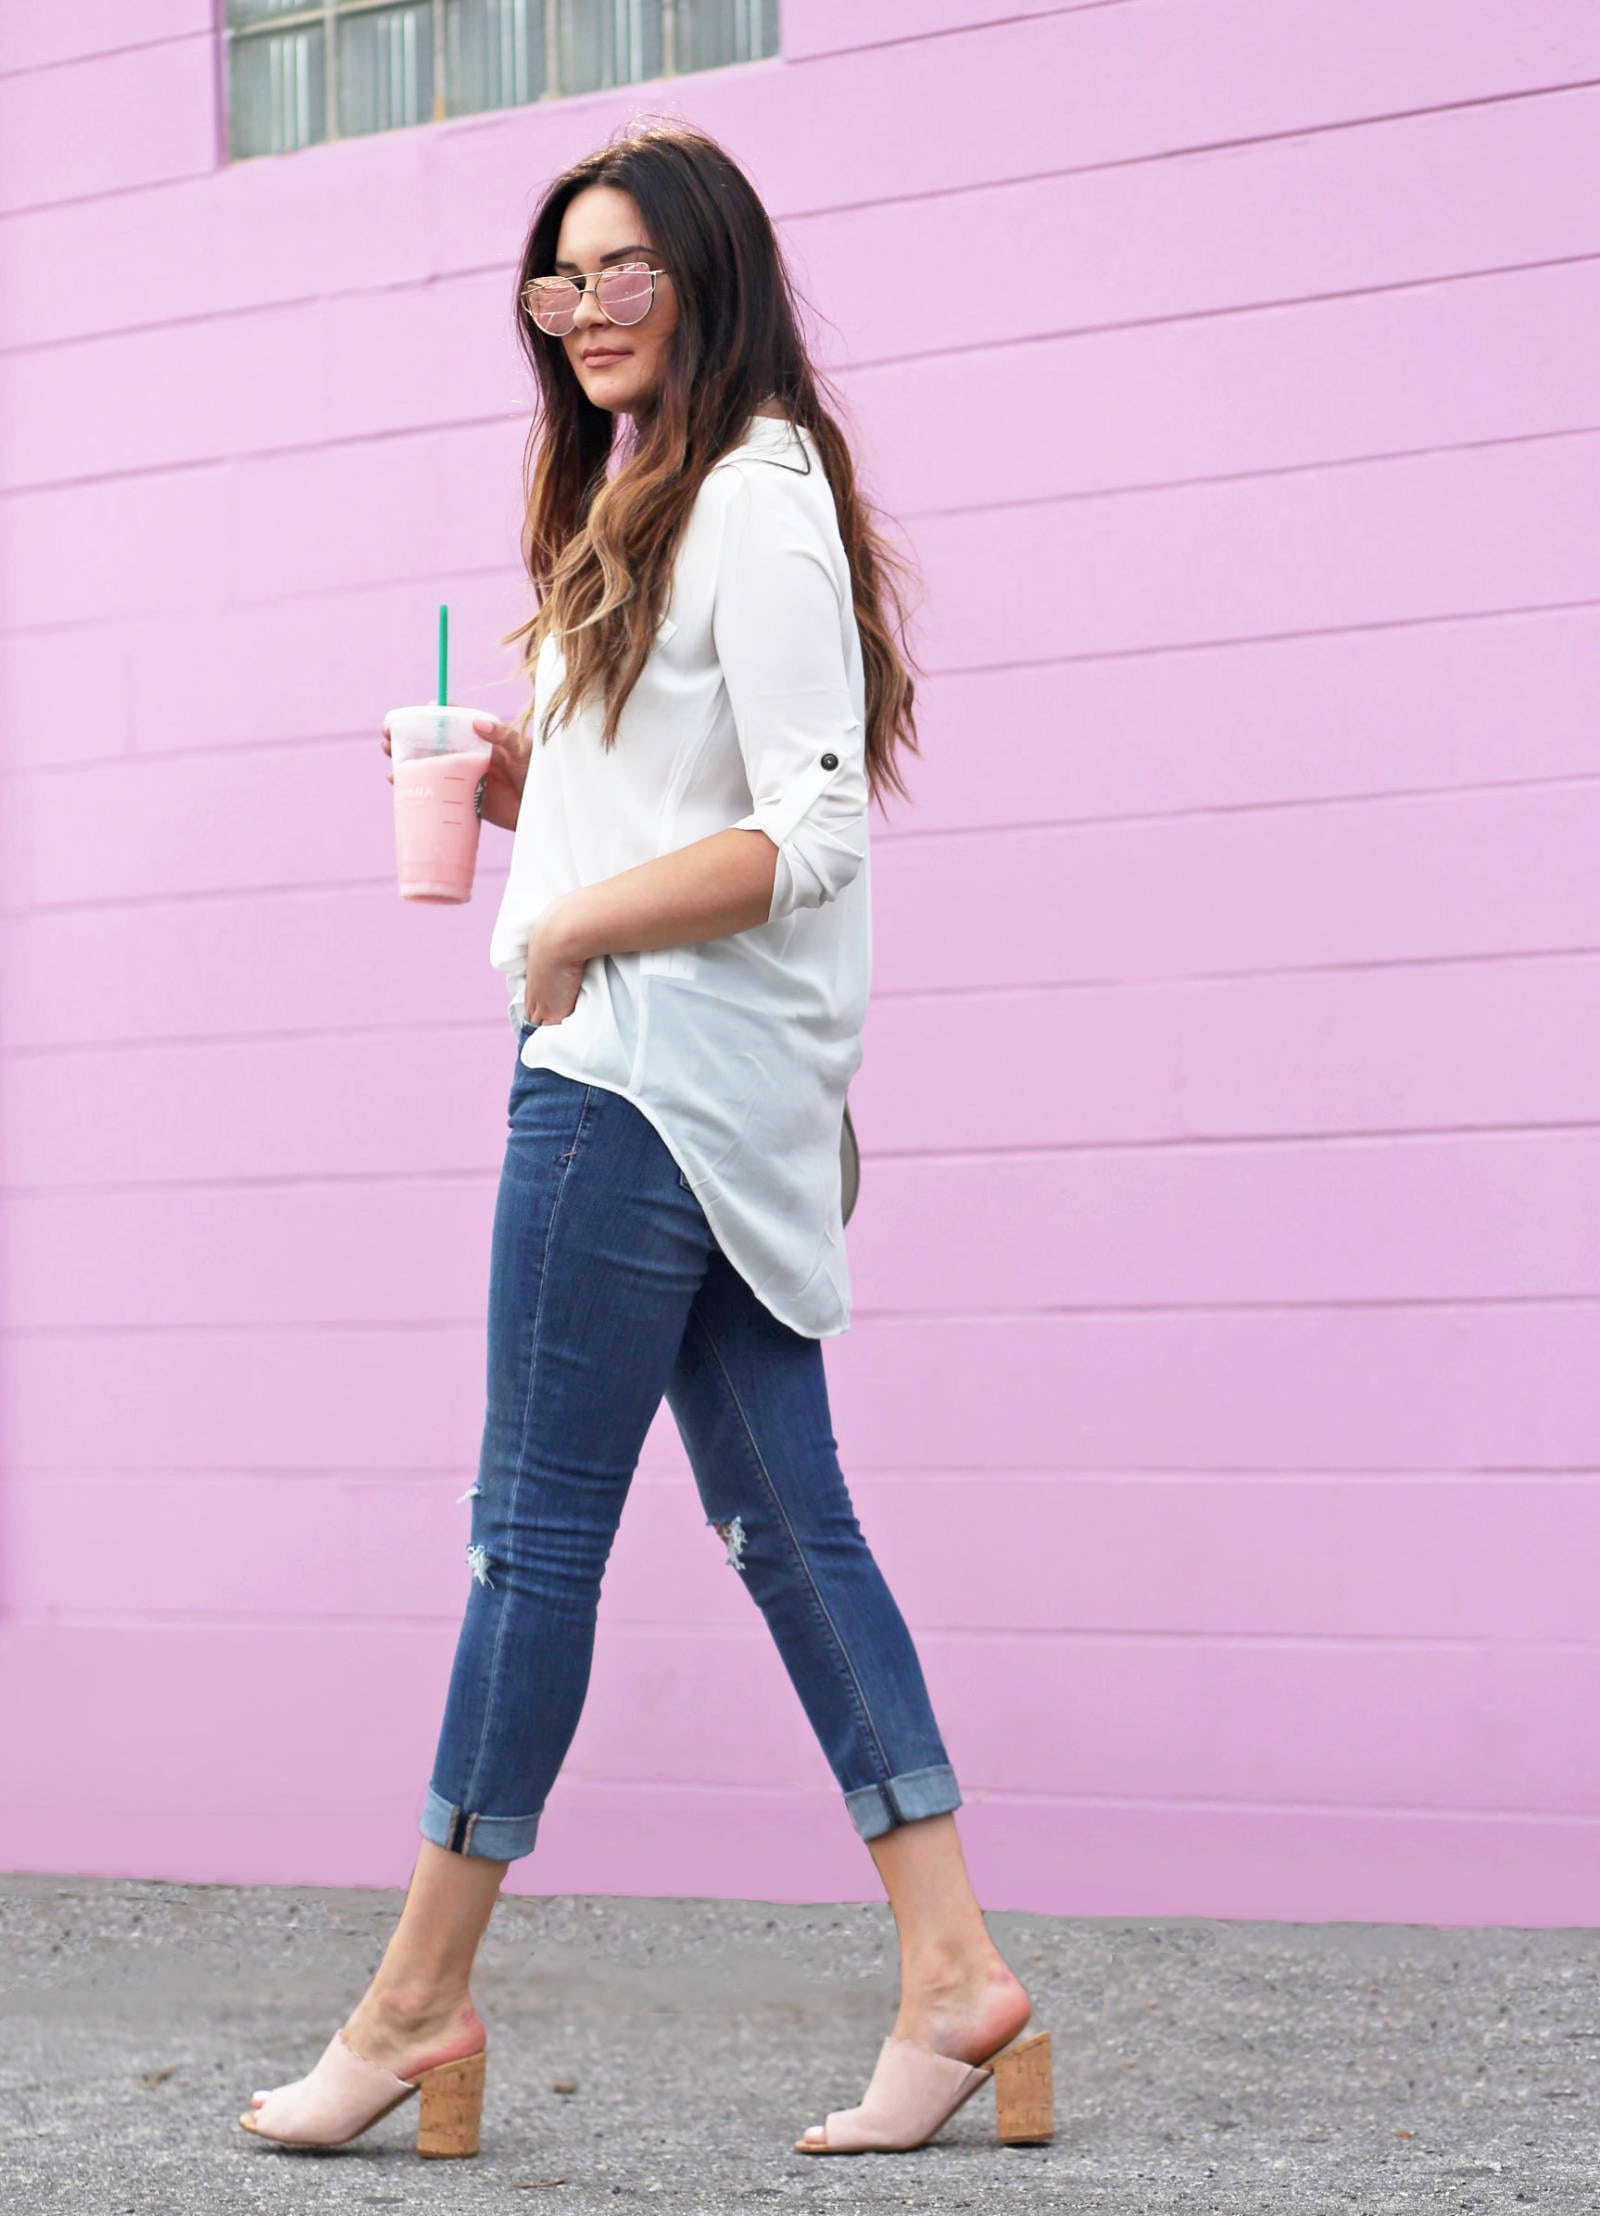 how to style mules for spring | fashion blogger Mash elle | mules | mules shoes